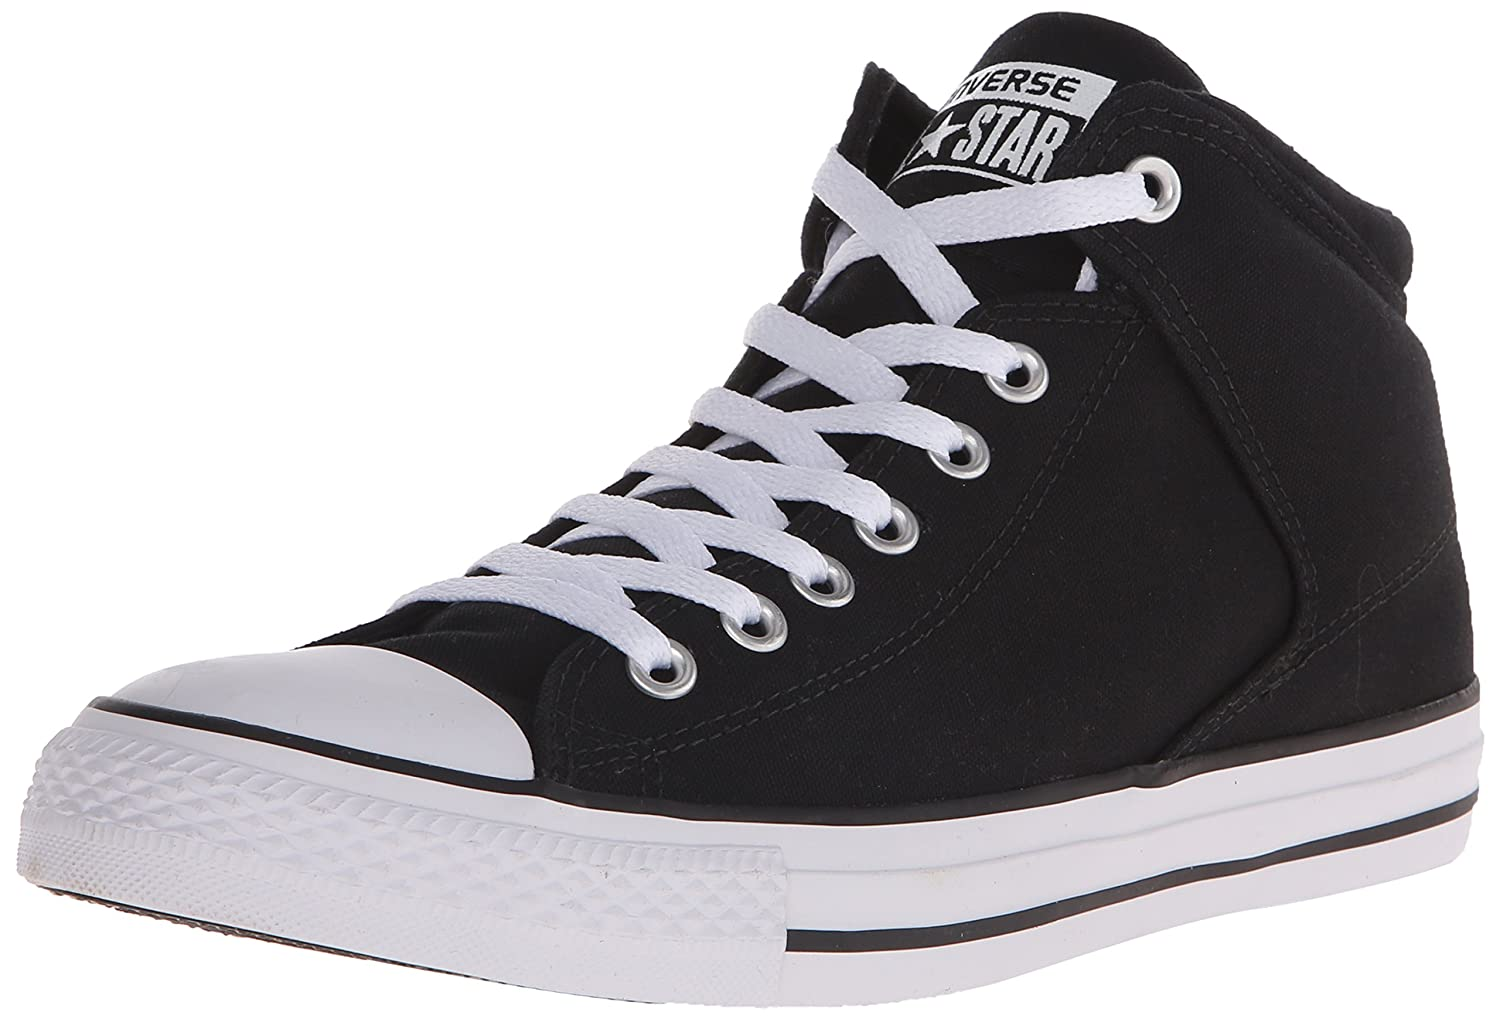 Converse Baskets pour 12913 pour Femme B07GSSNVJN Noir/Noir 59053a4 - fast-weightloss-diet.space